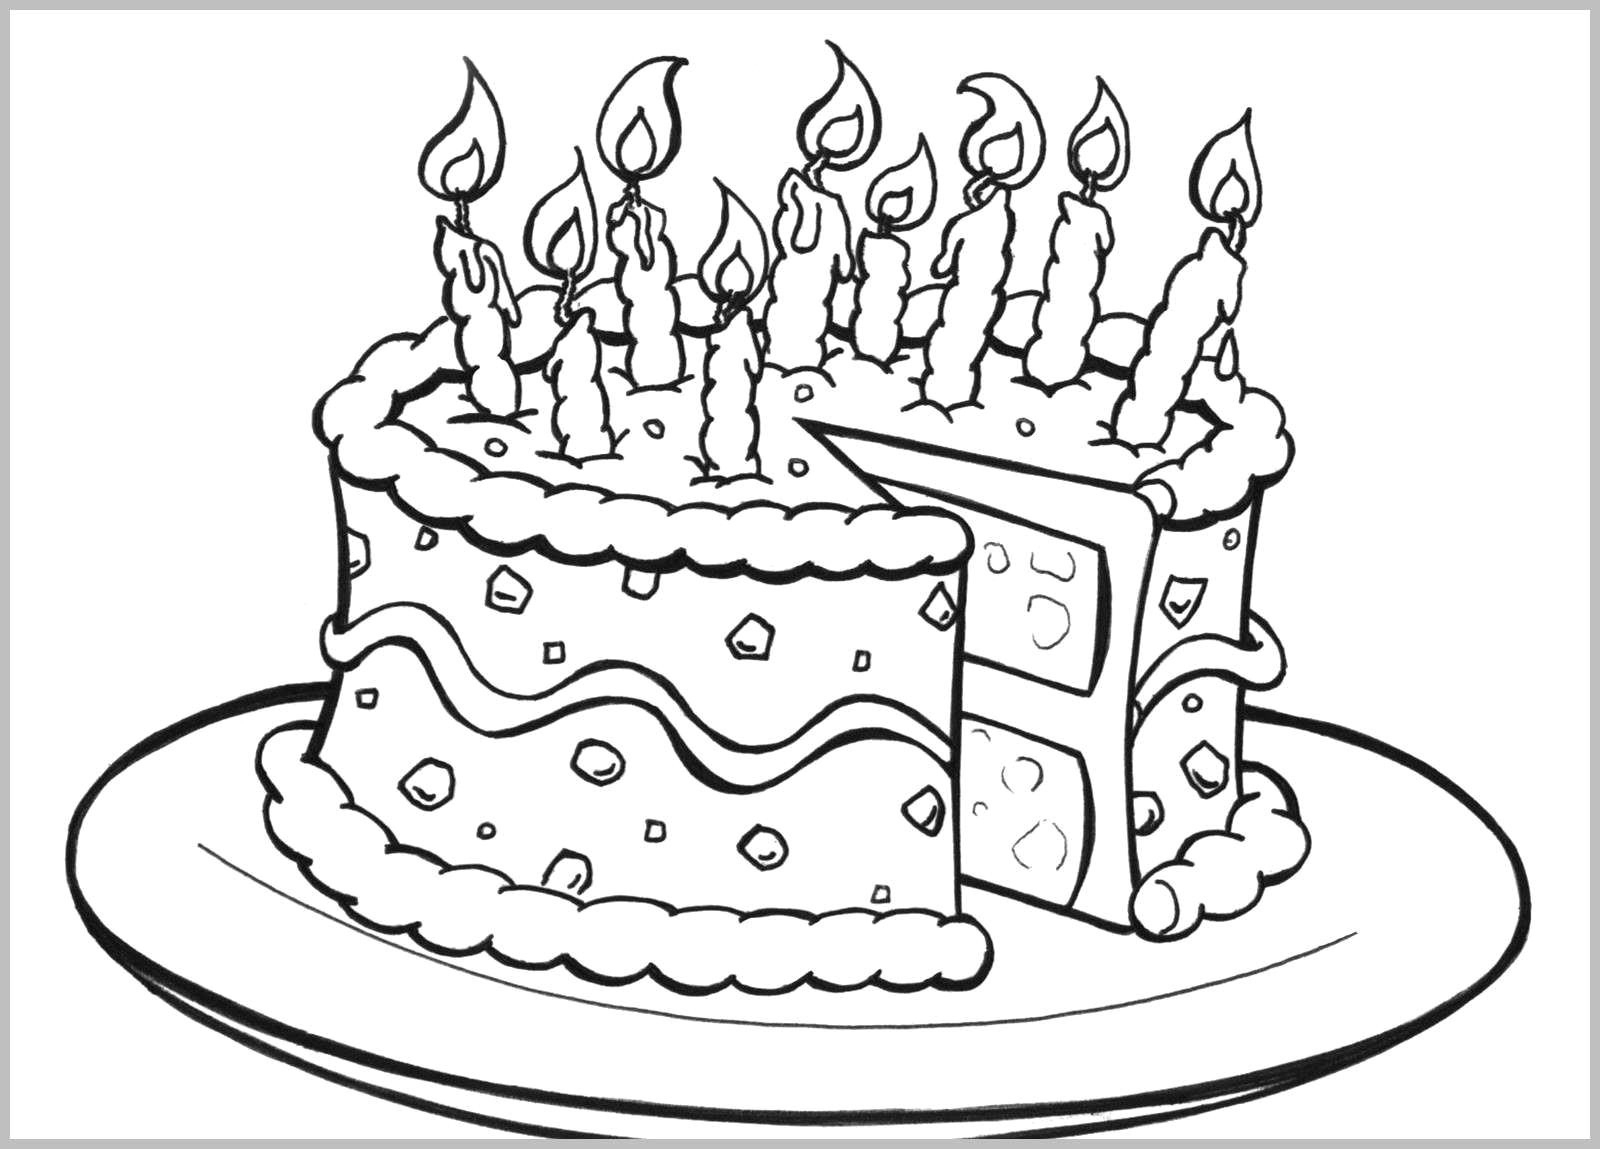 Coloring Pages For Birthday Coloring Ideas Free Printable Birthday Cake Coloring Pages For